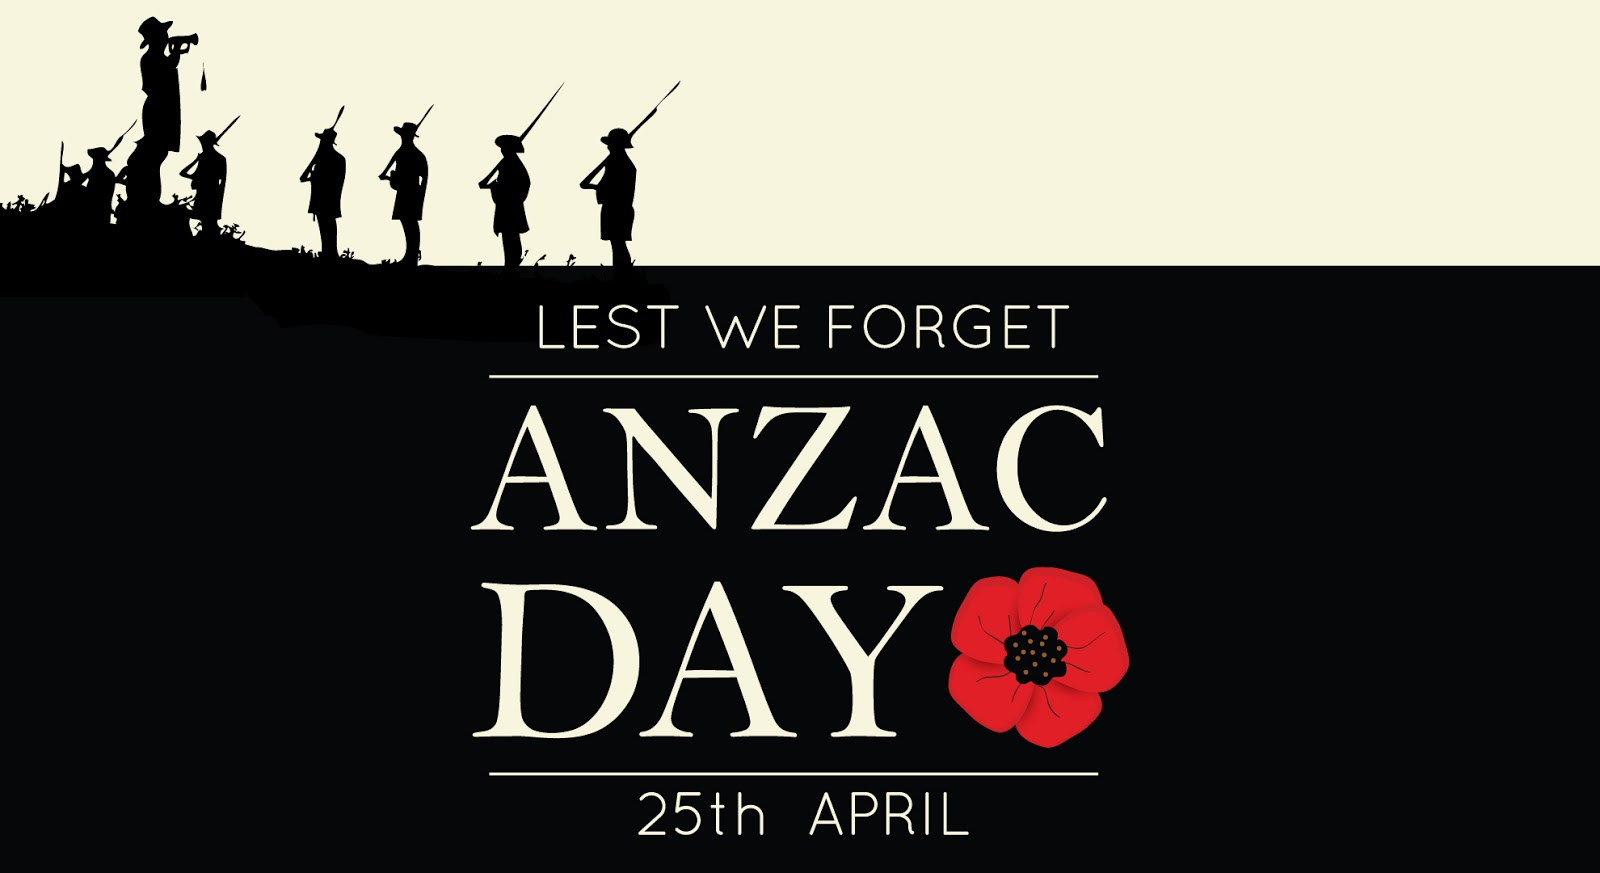 Anzac Day Quotes, Wishes, Greetings, Message, History, Facts, Images, Pictures, Wallpaper